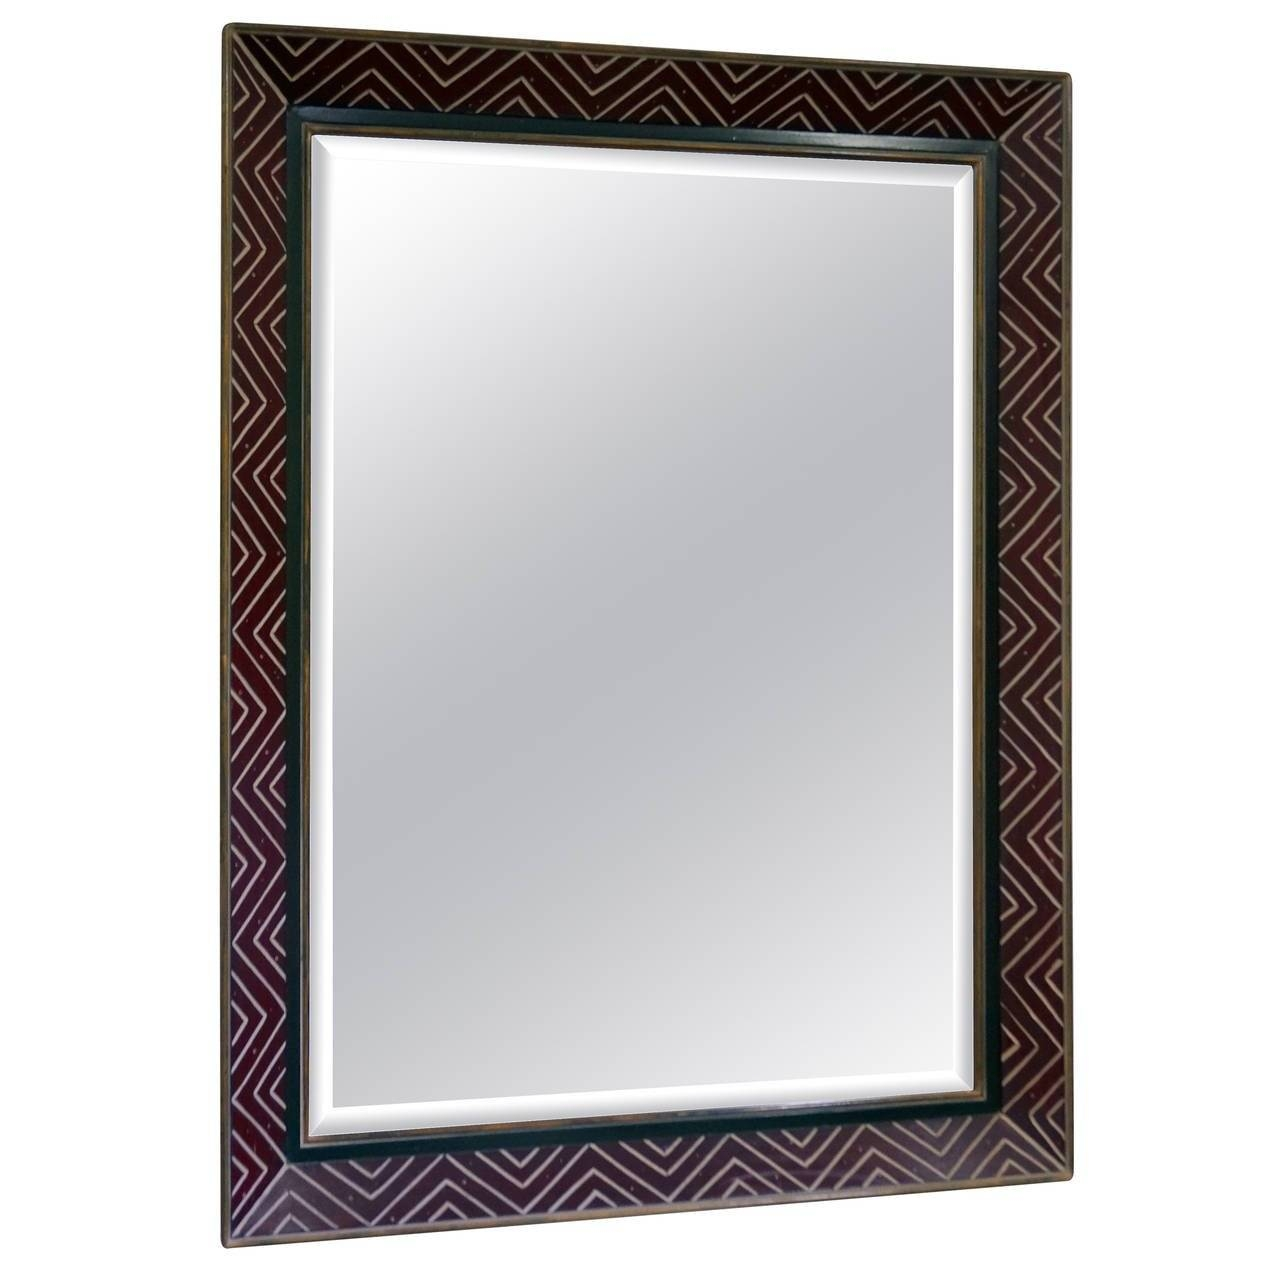 Art Deco Egyptian Revival Style Wall Mirror With Incised Chevron inside Art Deco Style Mirrors (Image 3 of 25)